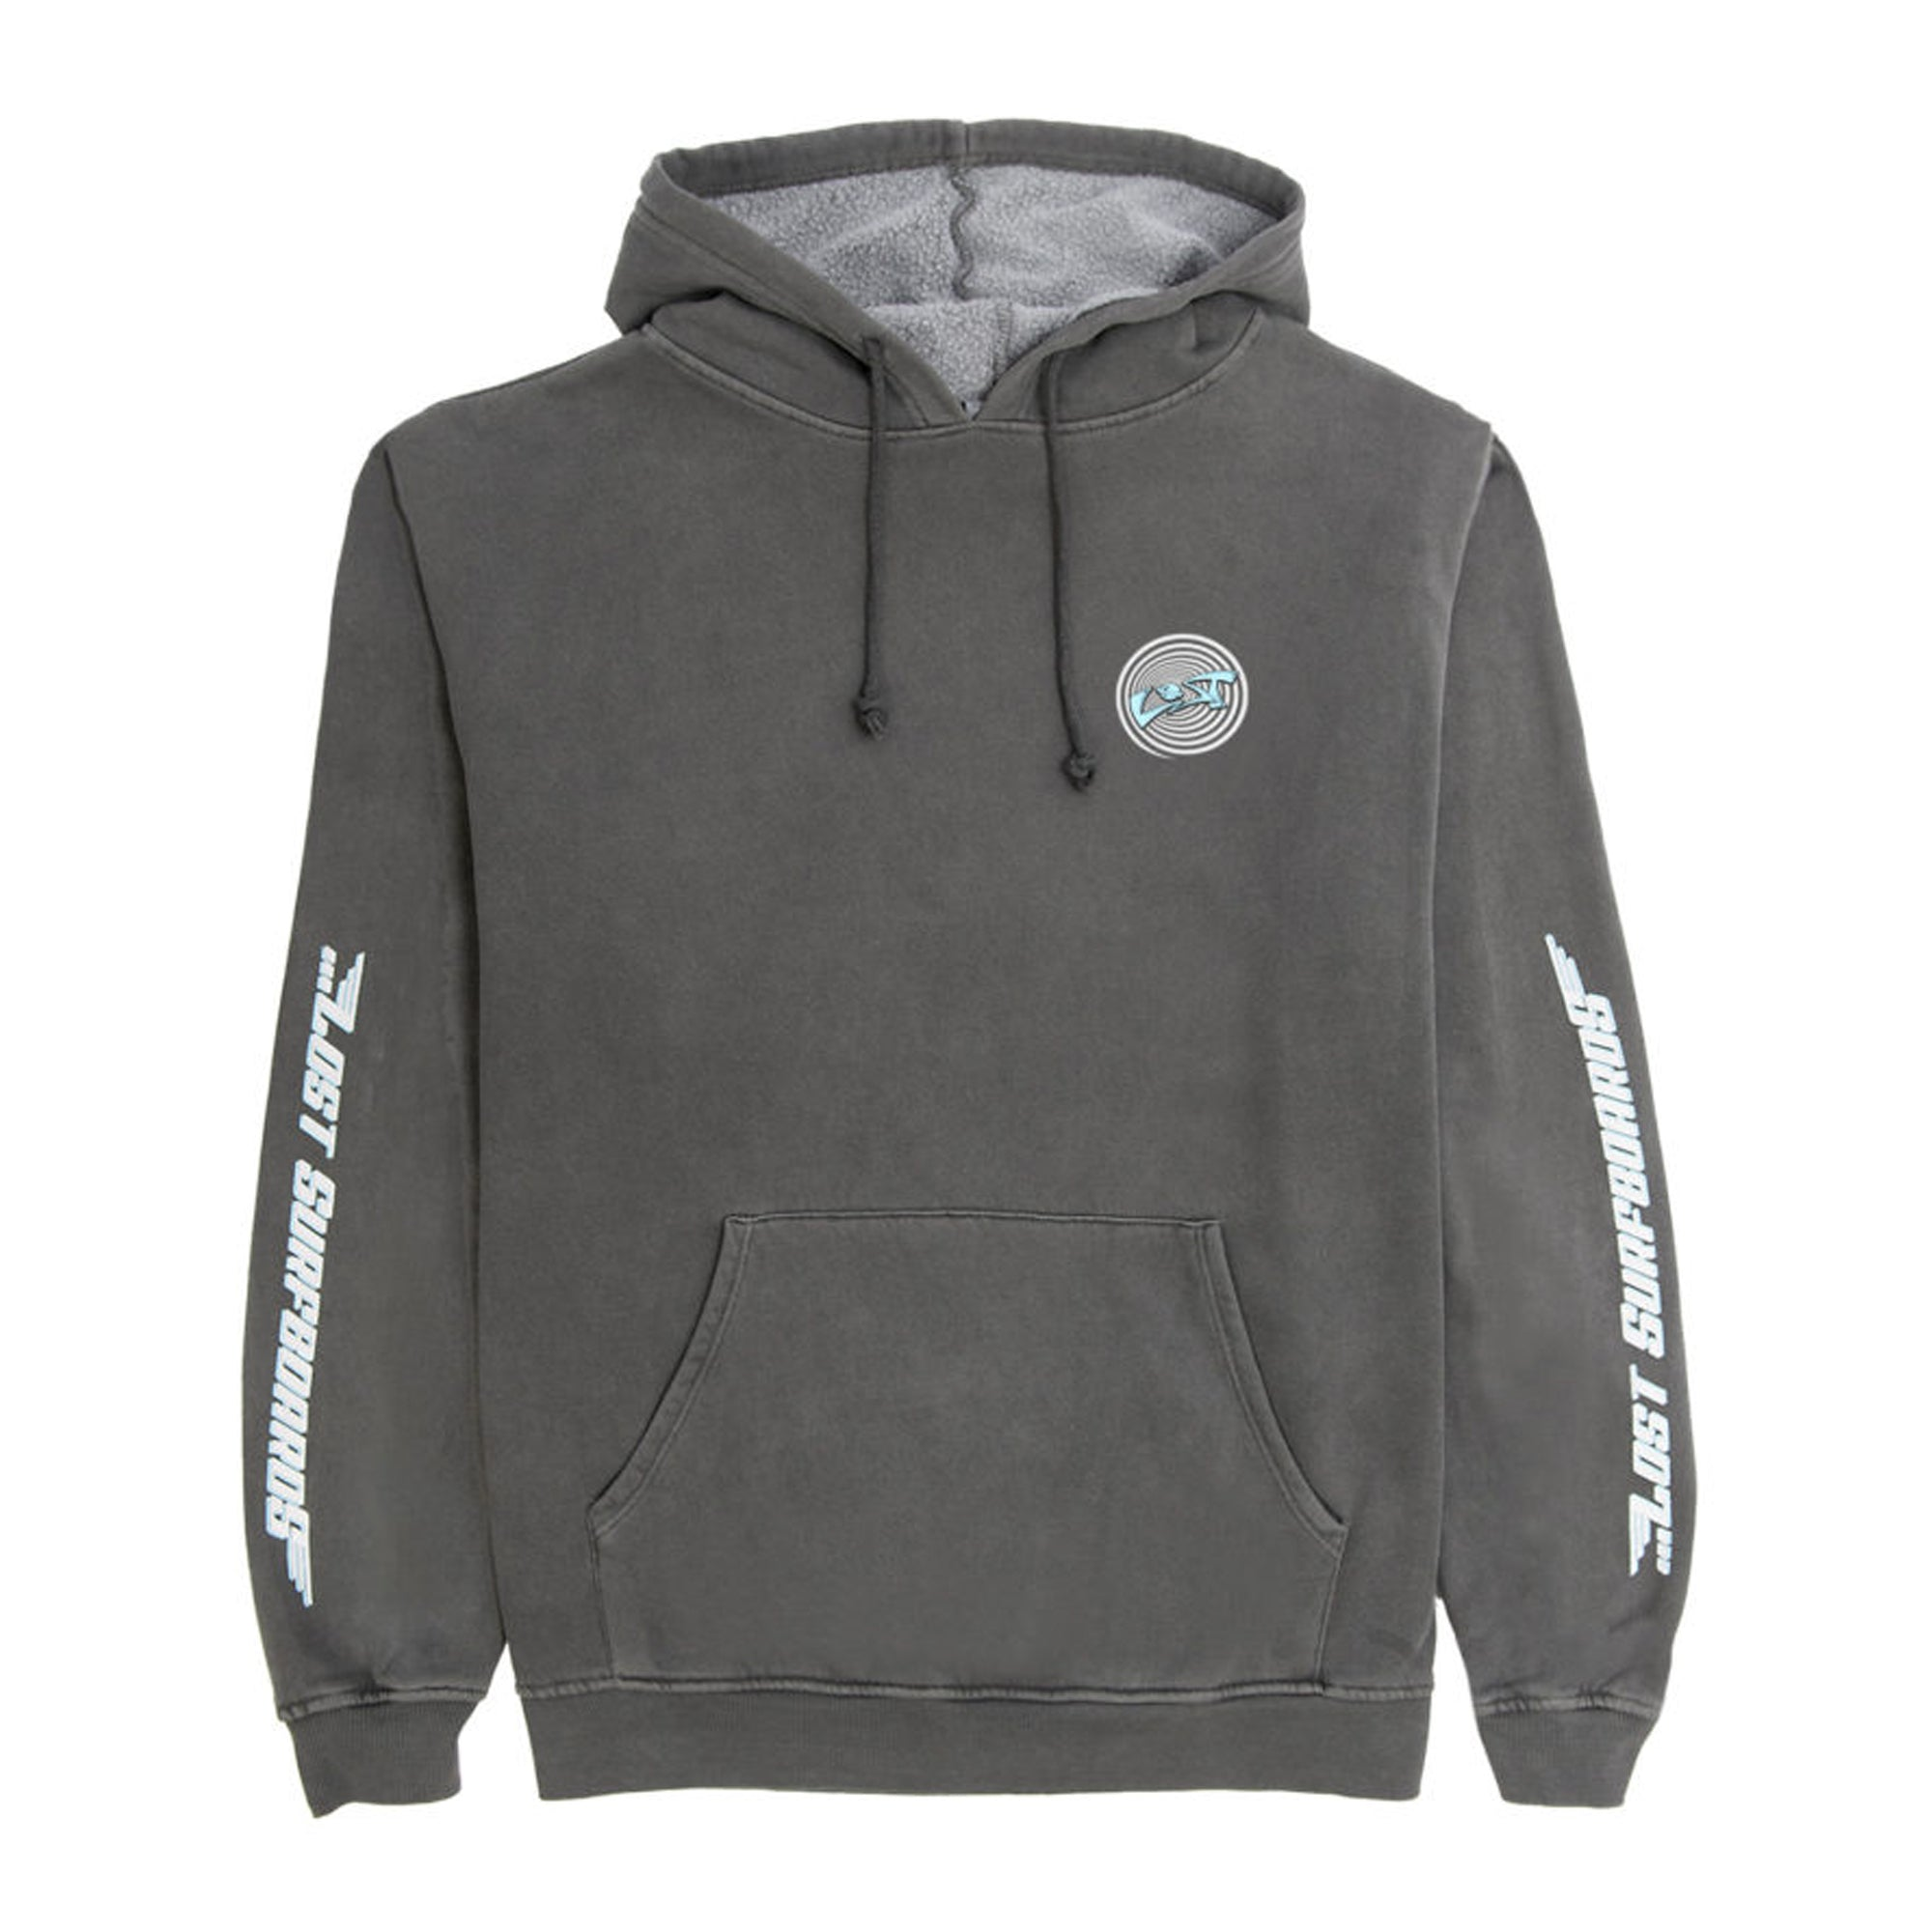 Lost Surfboards Men's Pullover Fleece Hoodie